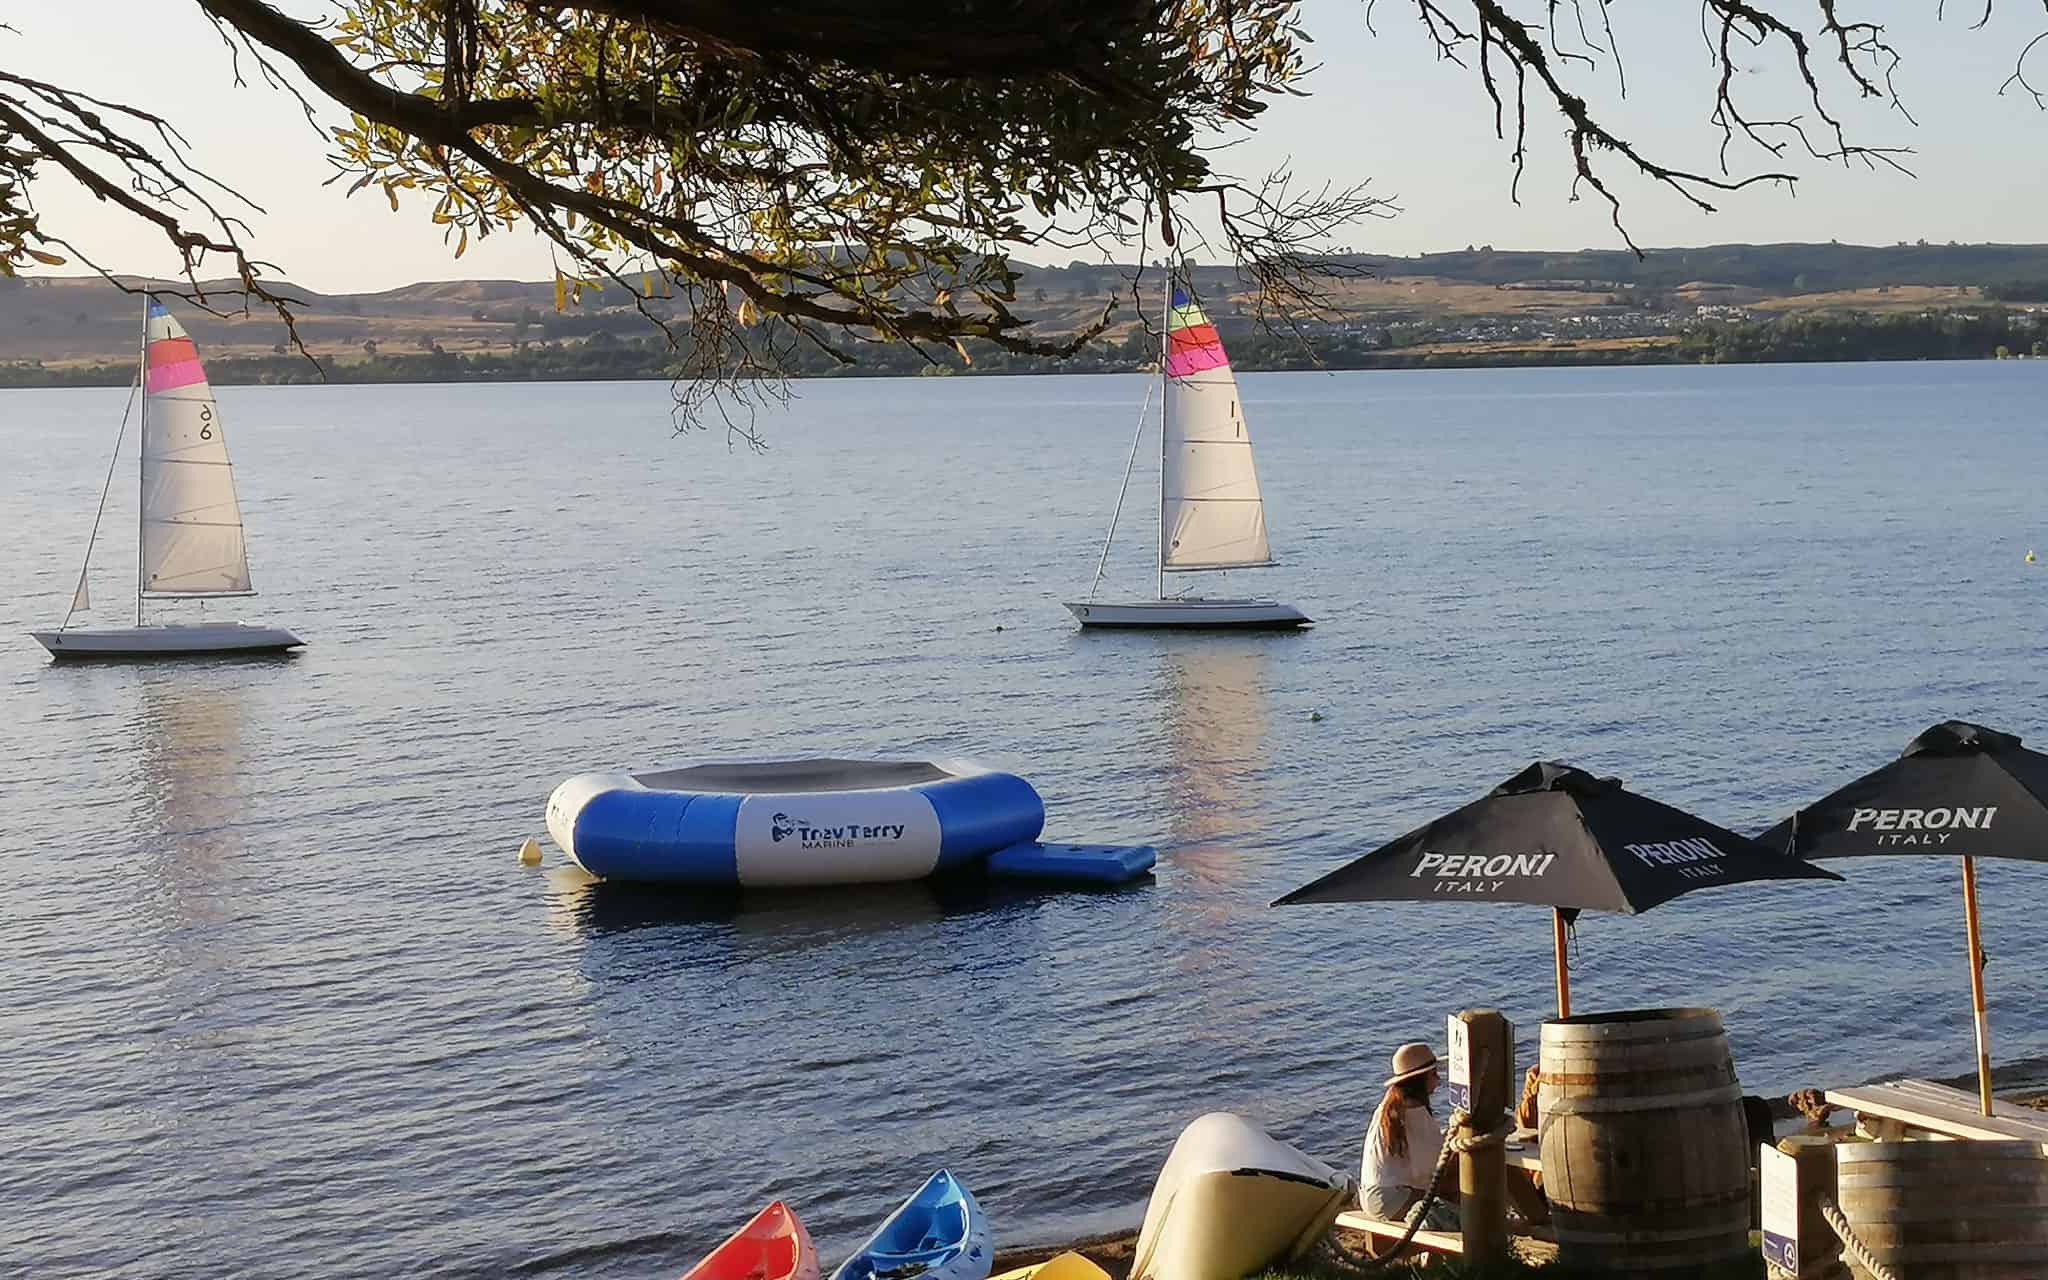 Stay-in-Taupo-Accommodation-Bed-and-Breakfast-in-Taupo-Waikato-New-Zealand-18